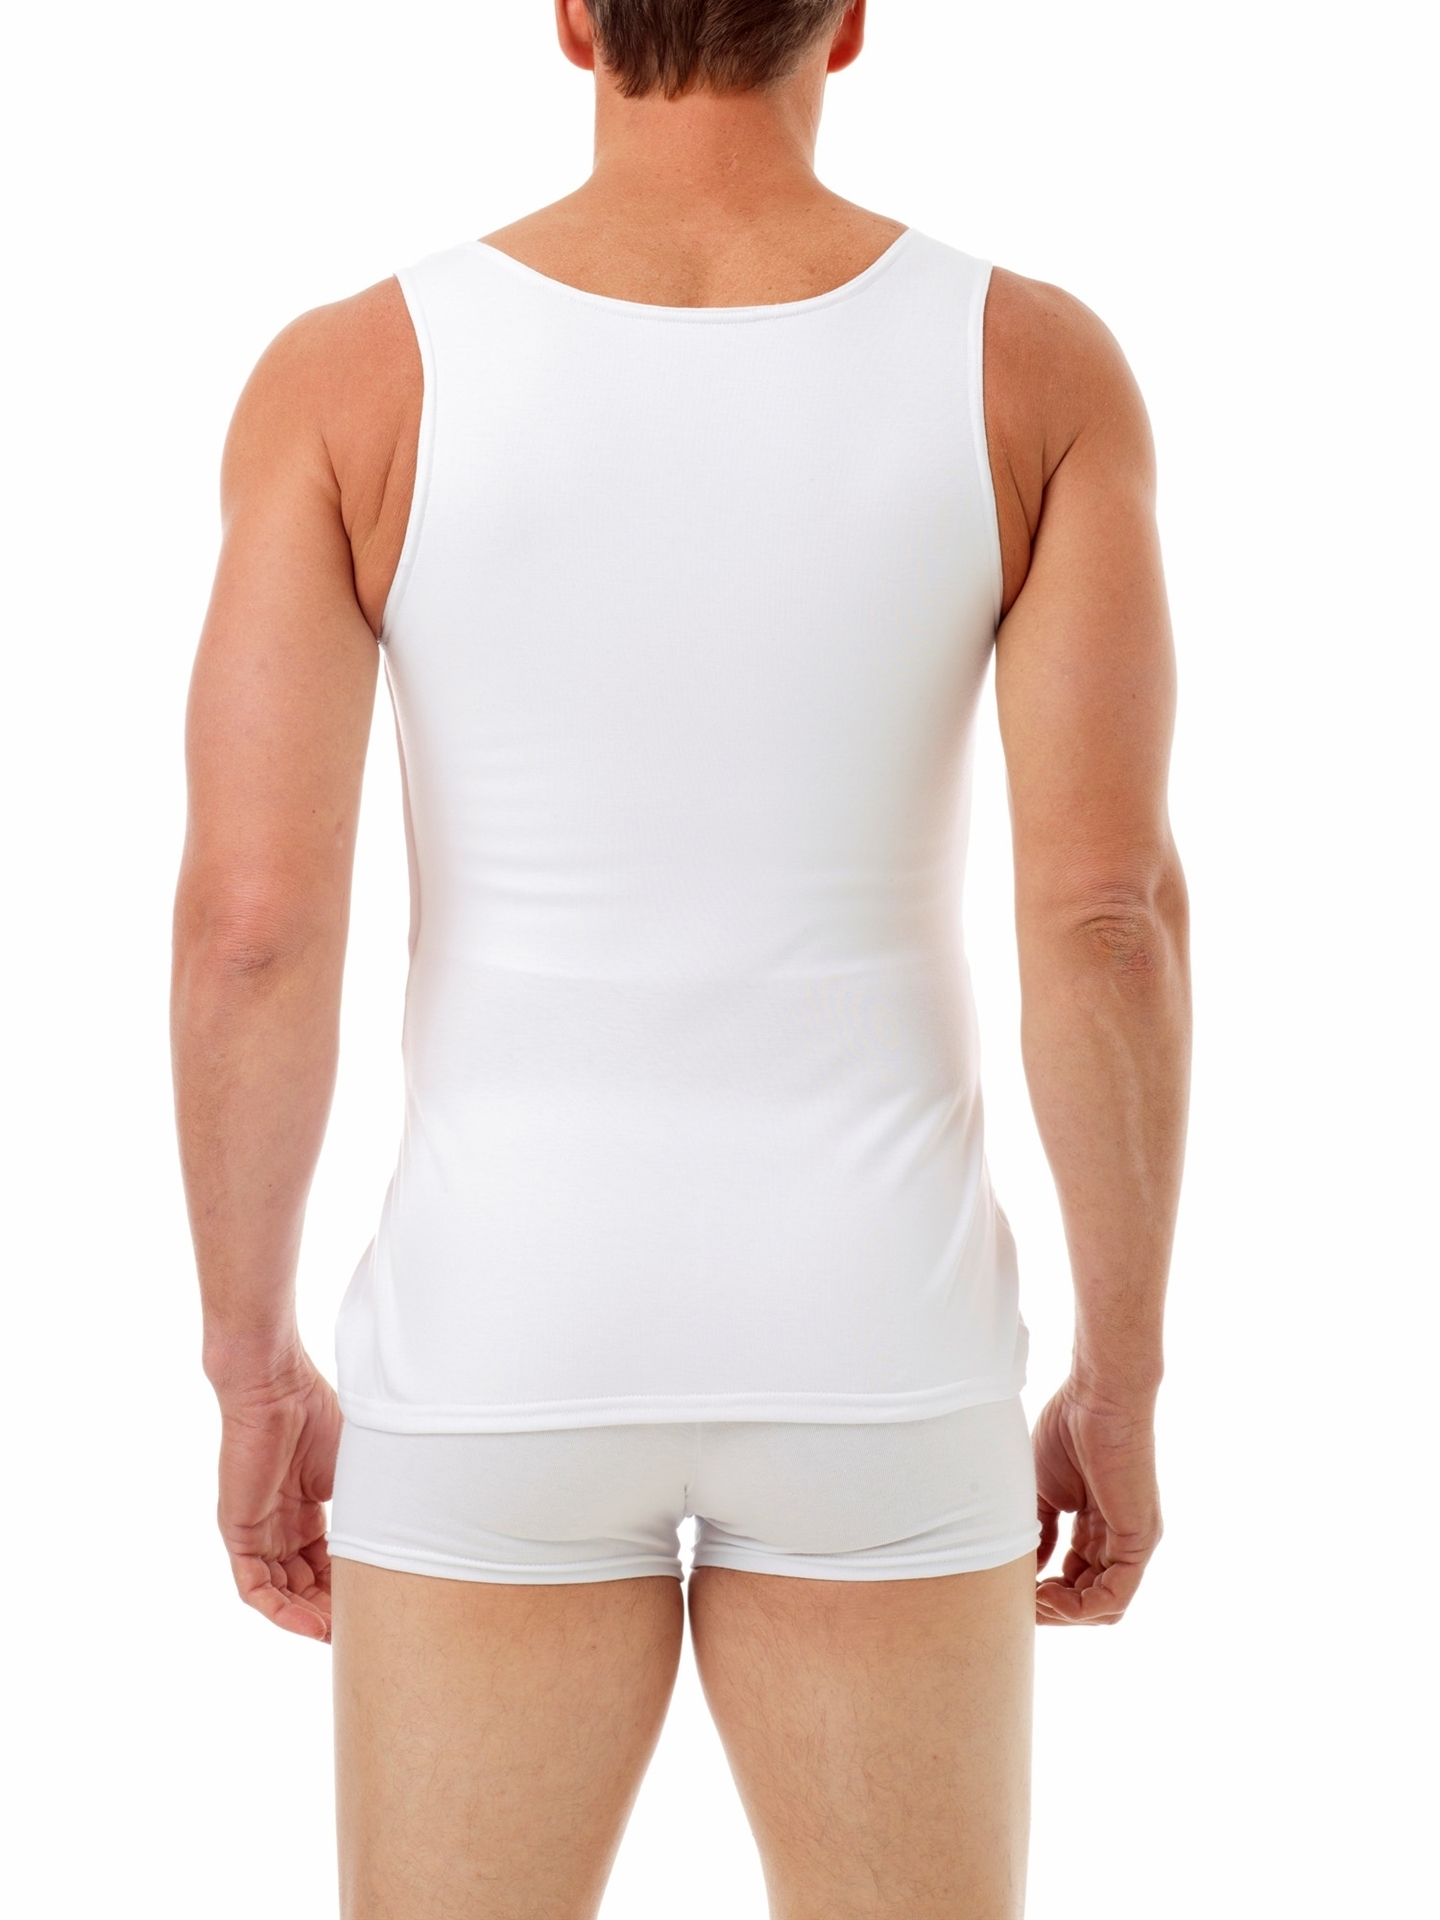 FTM Chest Binder Compression Tank